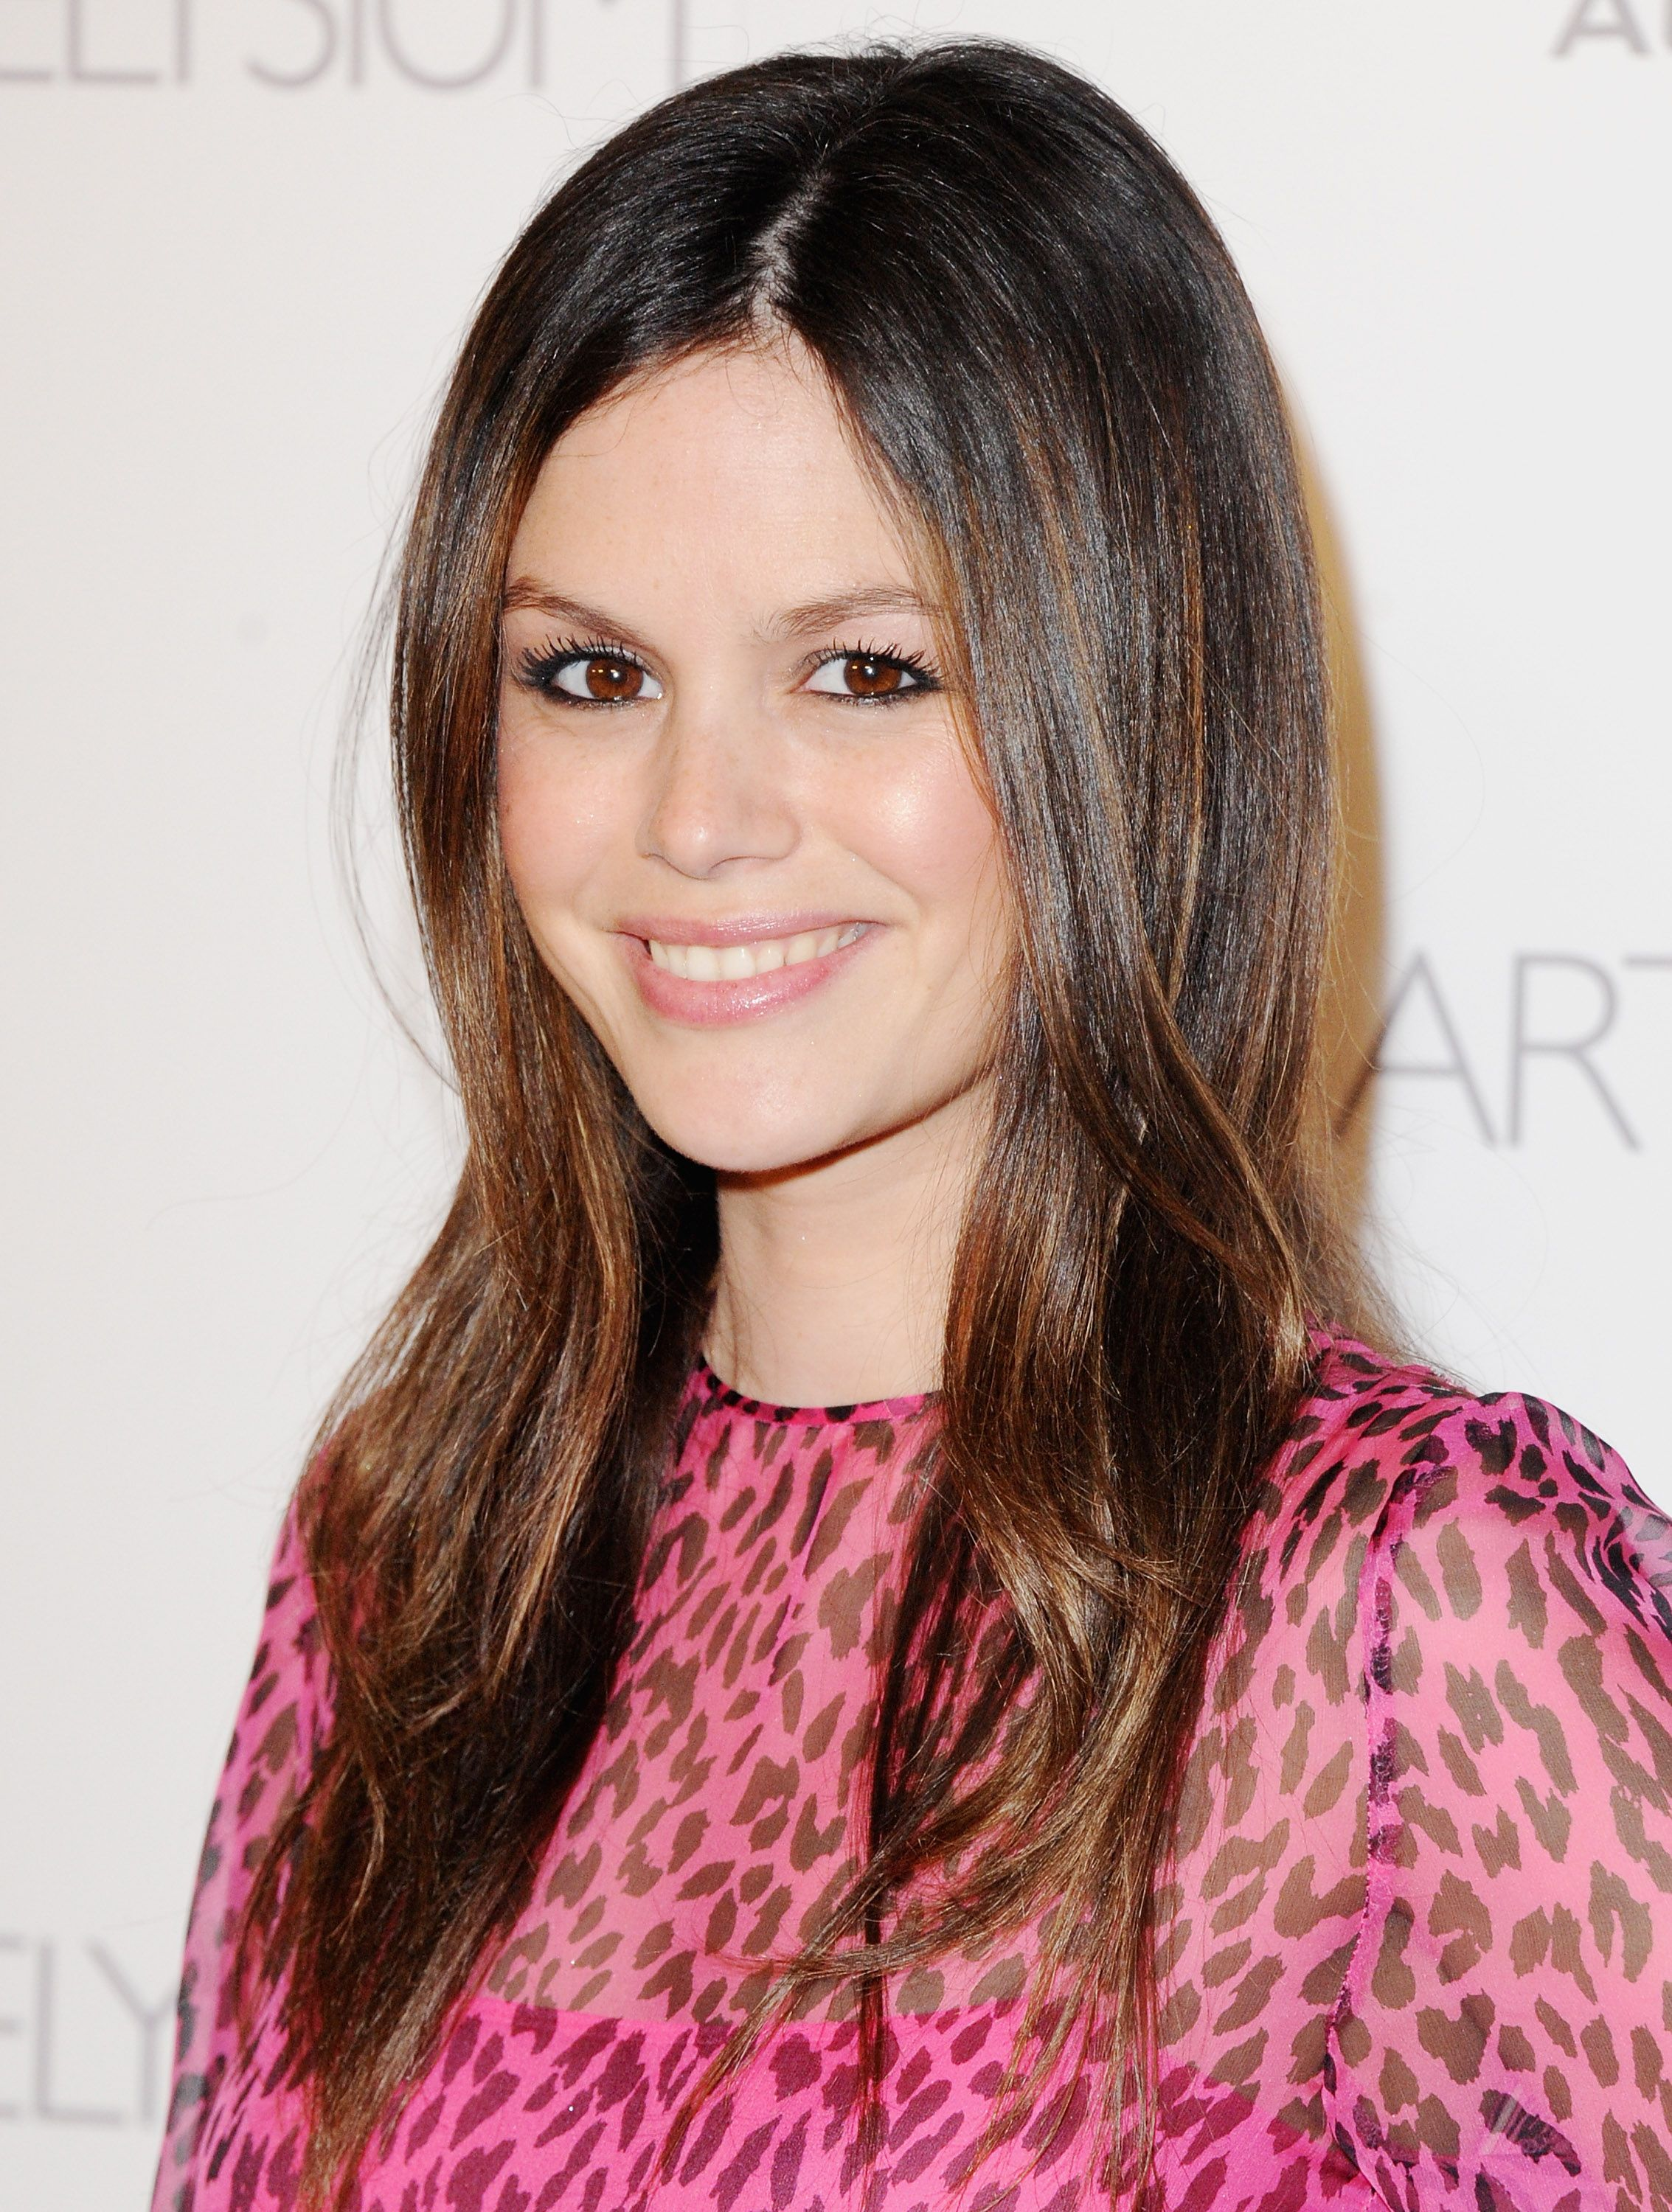 14 Best Haircuts for Spring 2013: semi long and layered in the front -  Rachel Bilson